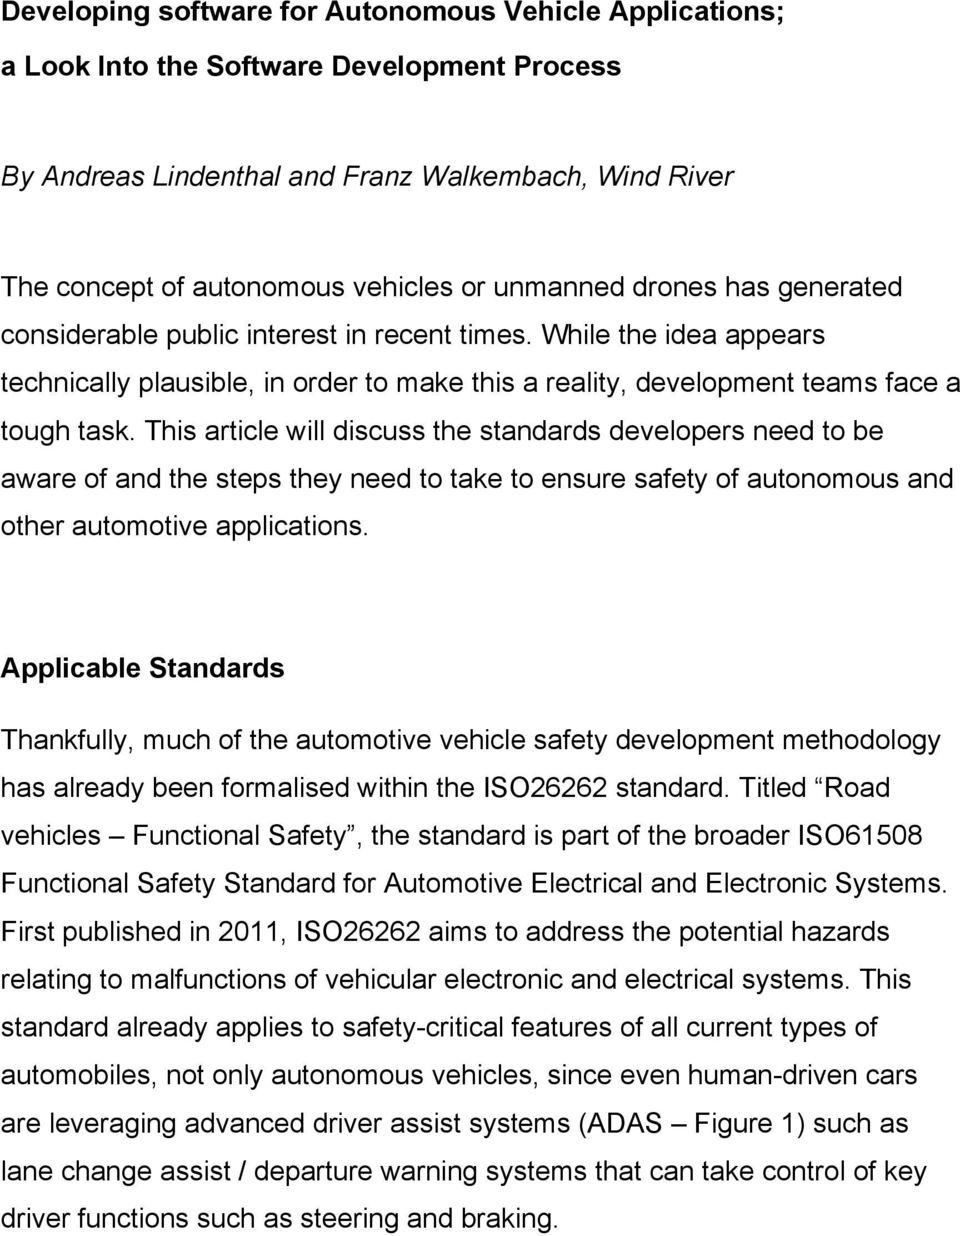 This article will discuss the standards developers need to be aware of and the steps they need to take to ensure safety of autonomous and other automotive applications.